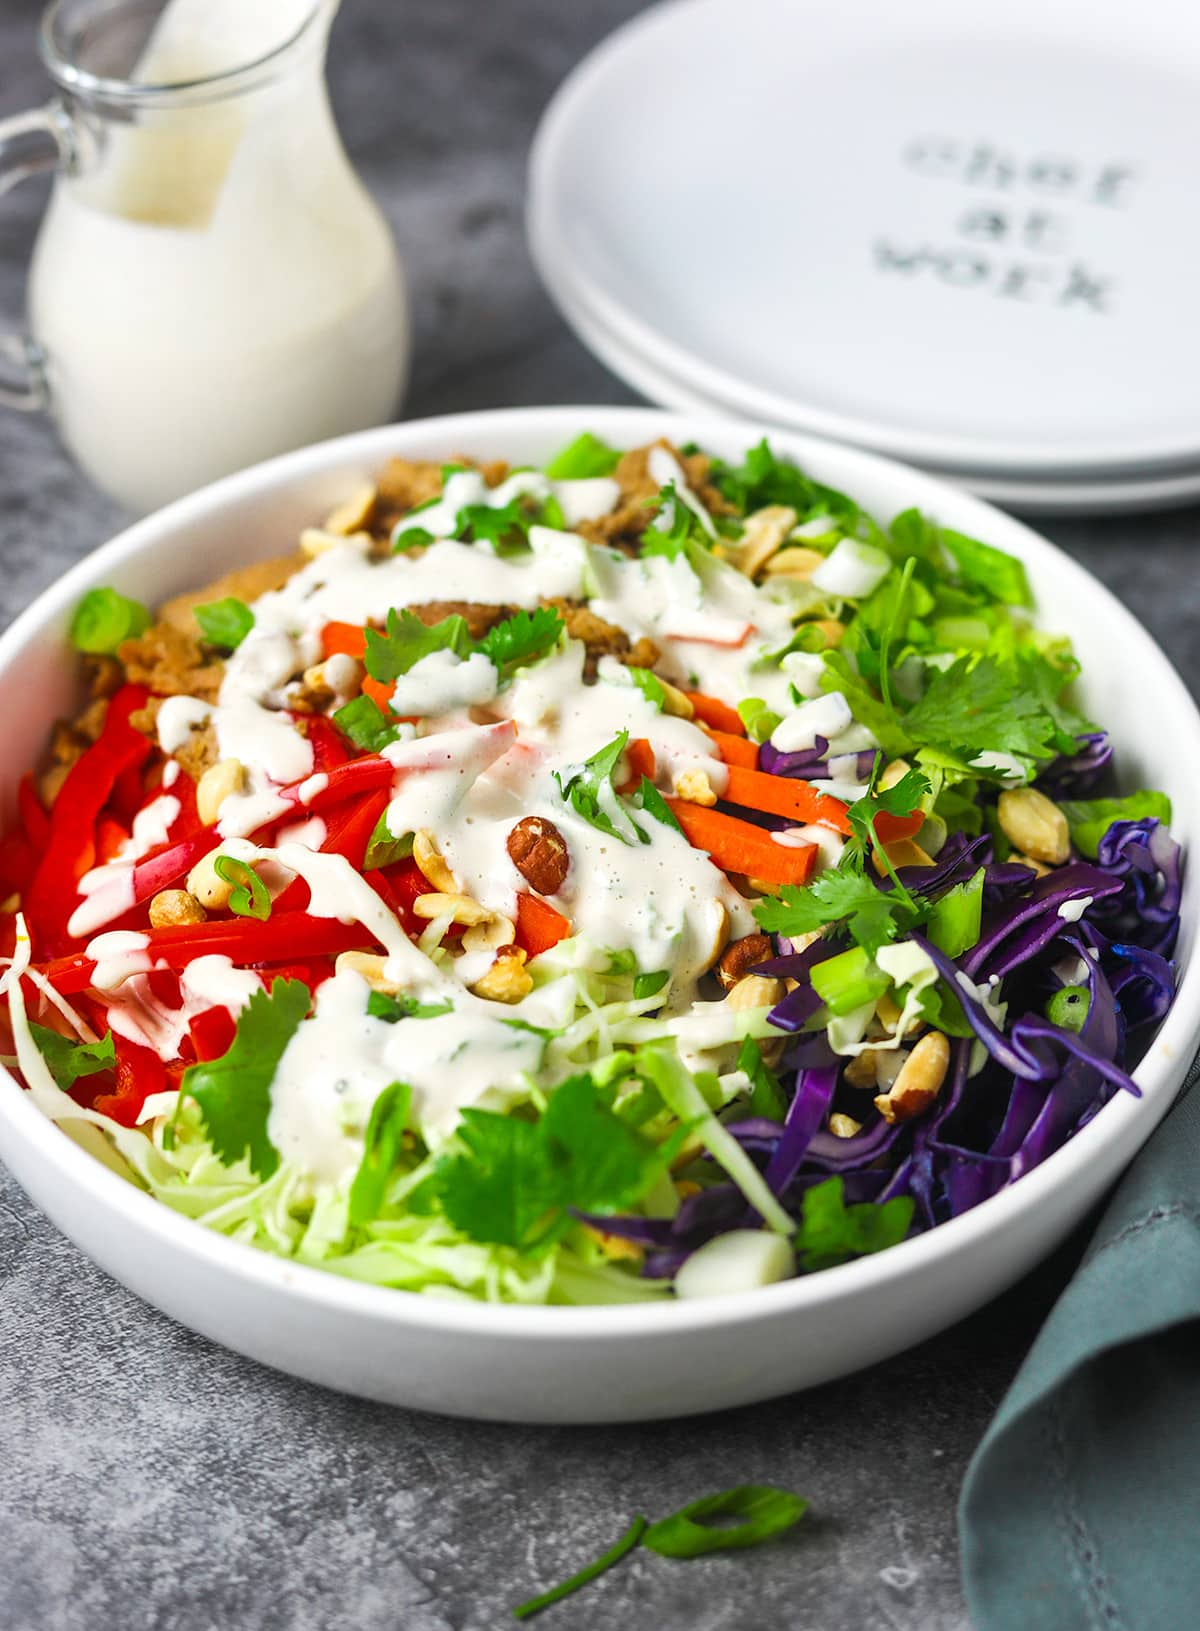 vegan asian salad in a white bowl tossed with creamy vegan asian salad dressing on a grey background with stacked white plates and salad dressing container in the background